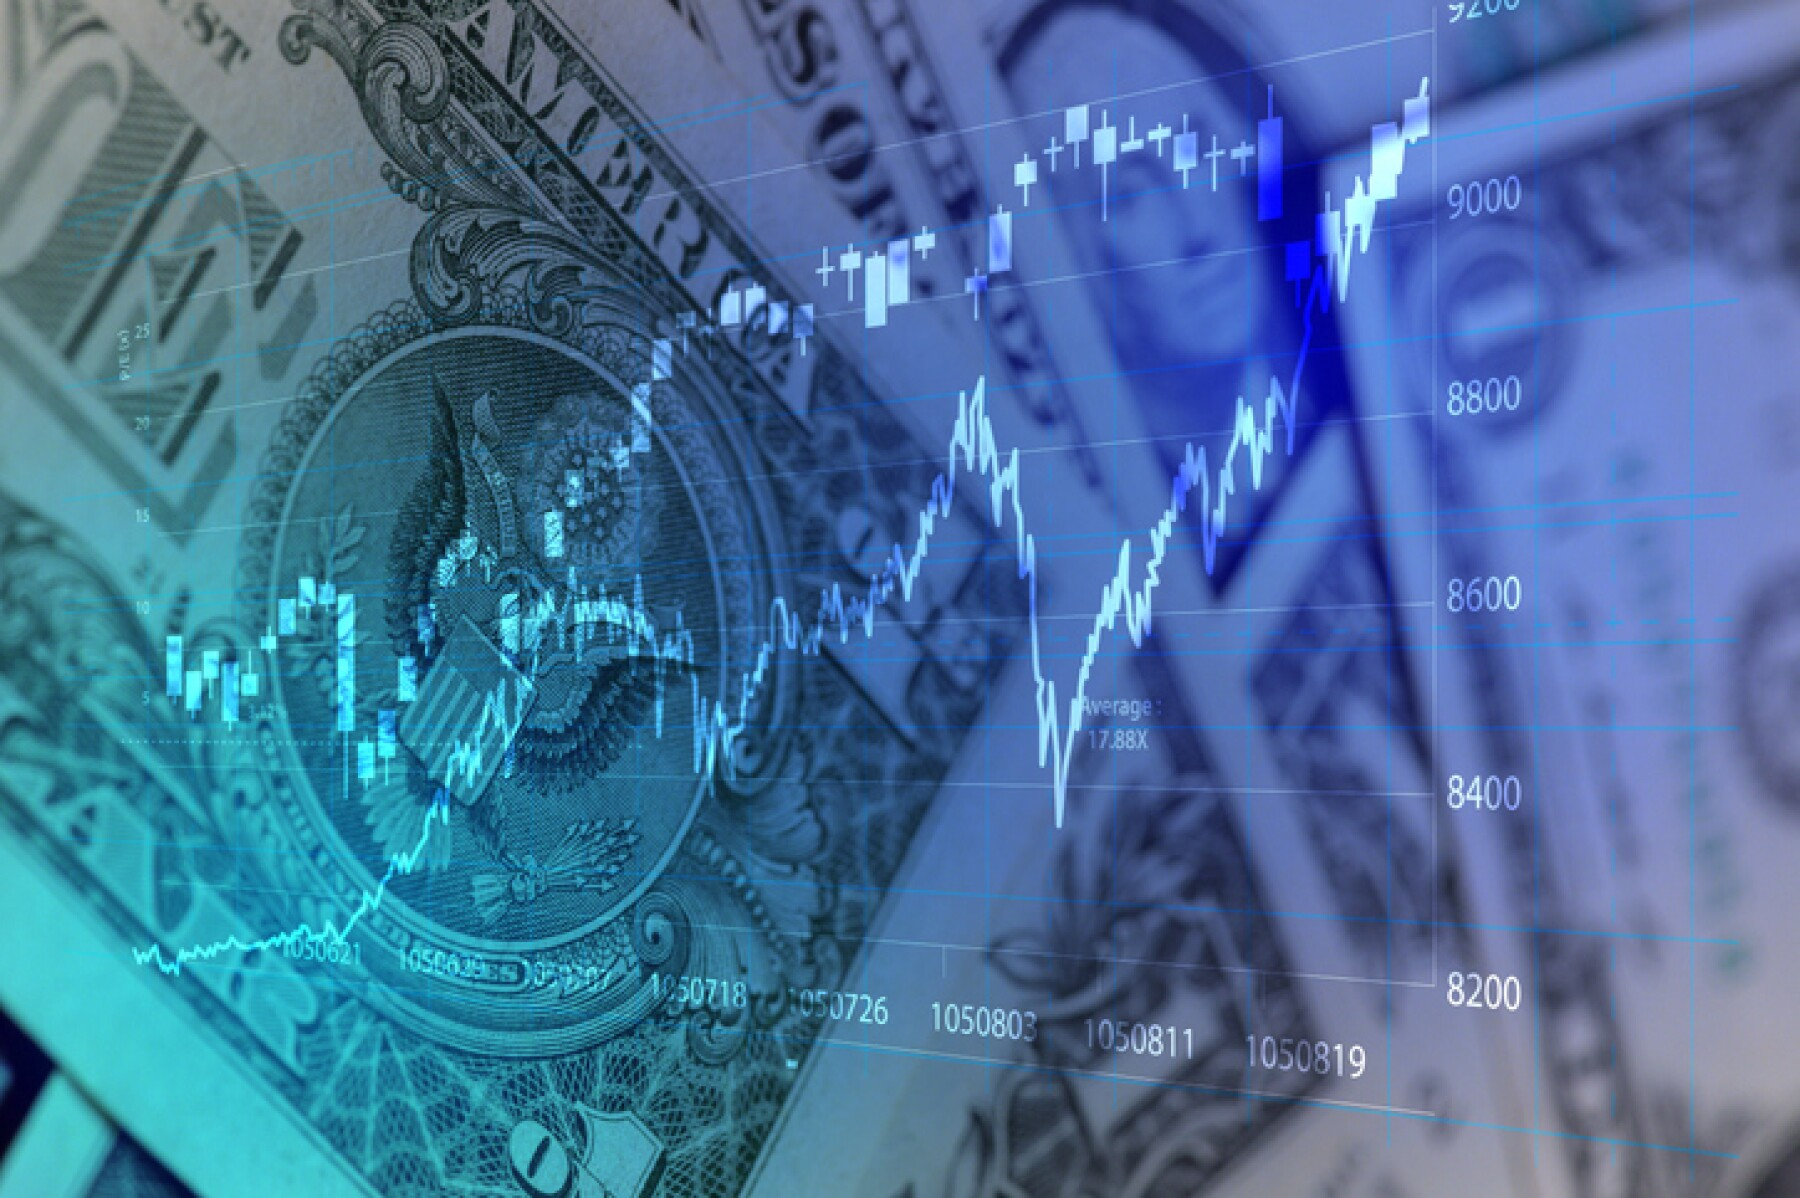 Finance background with USD note and stock chart